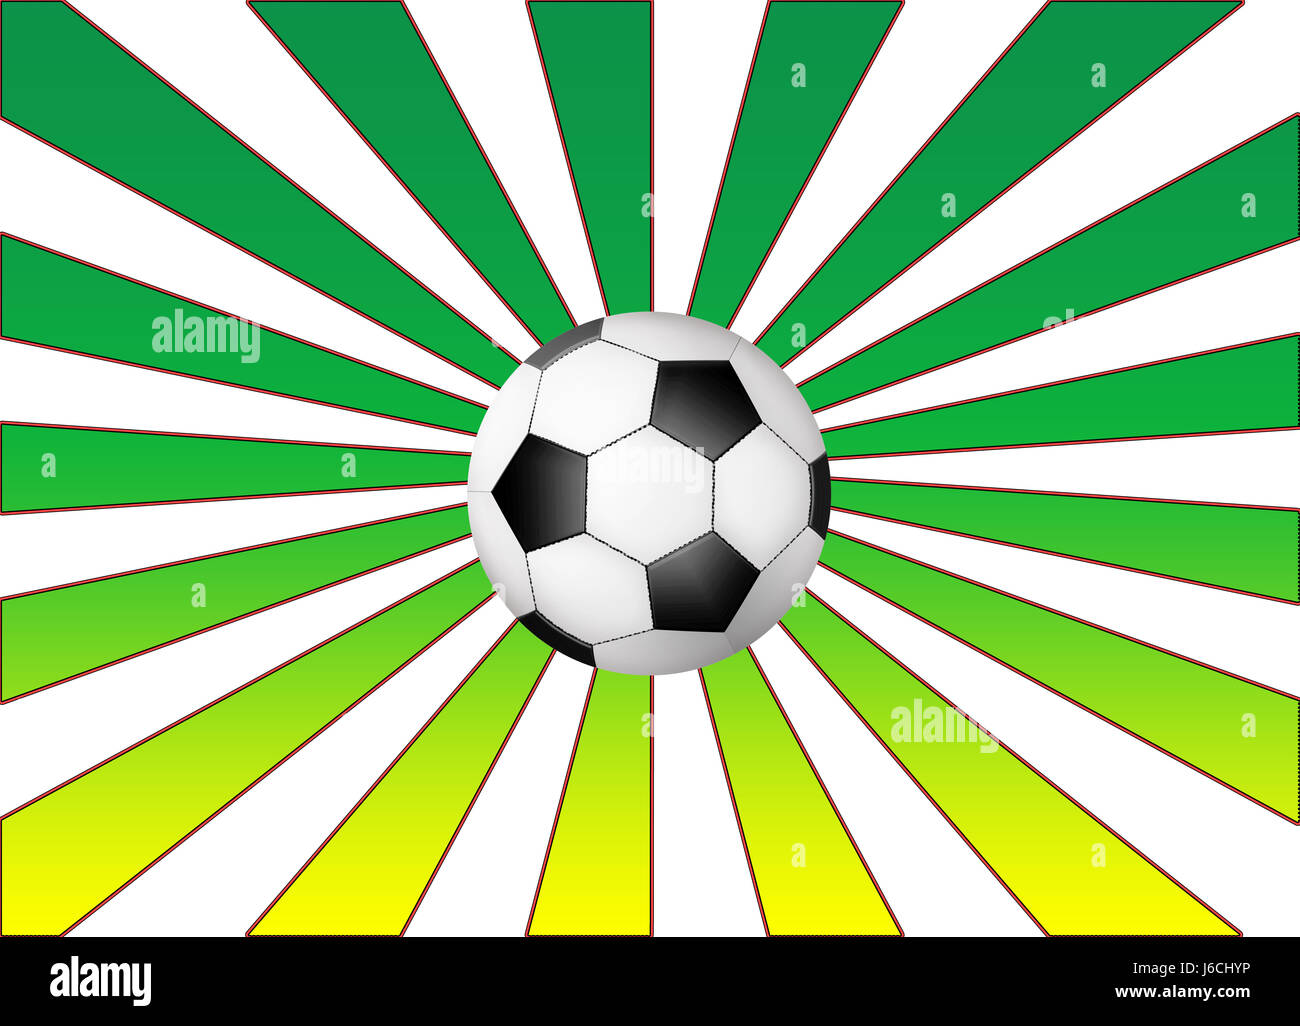 Fussball Retro Stock Photos Fussball Retro Stock Images